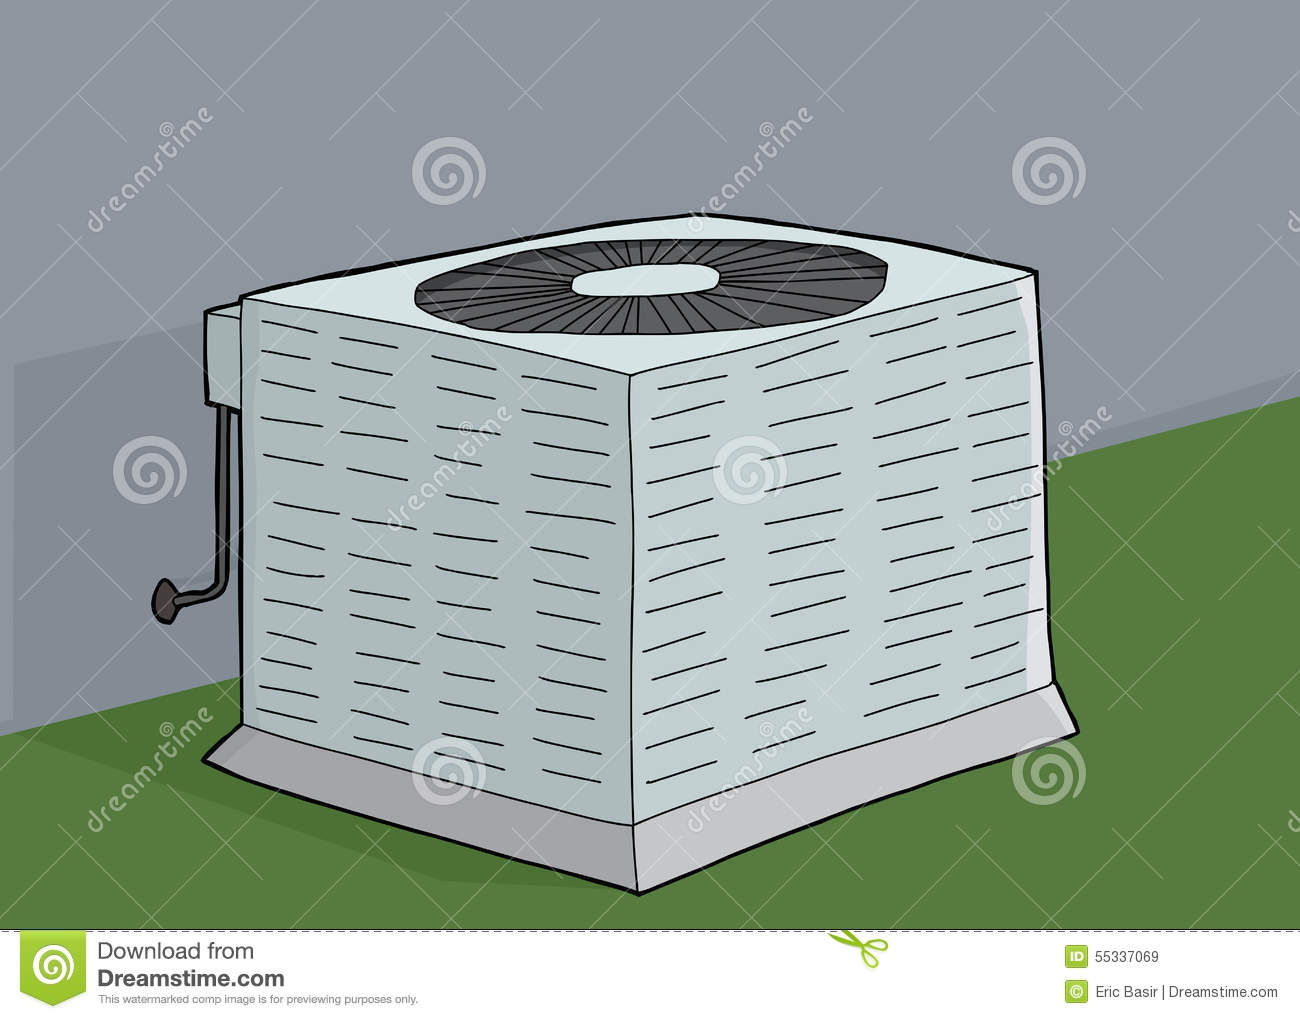 Residential Central Air Conditioning Units